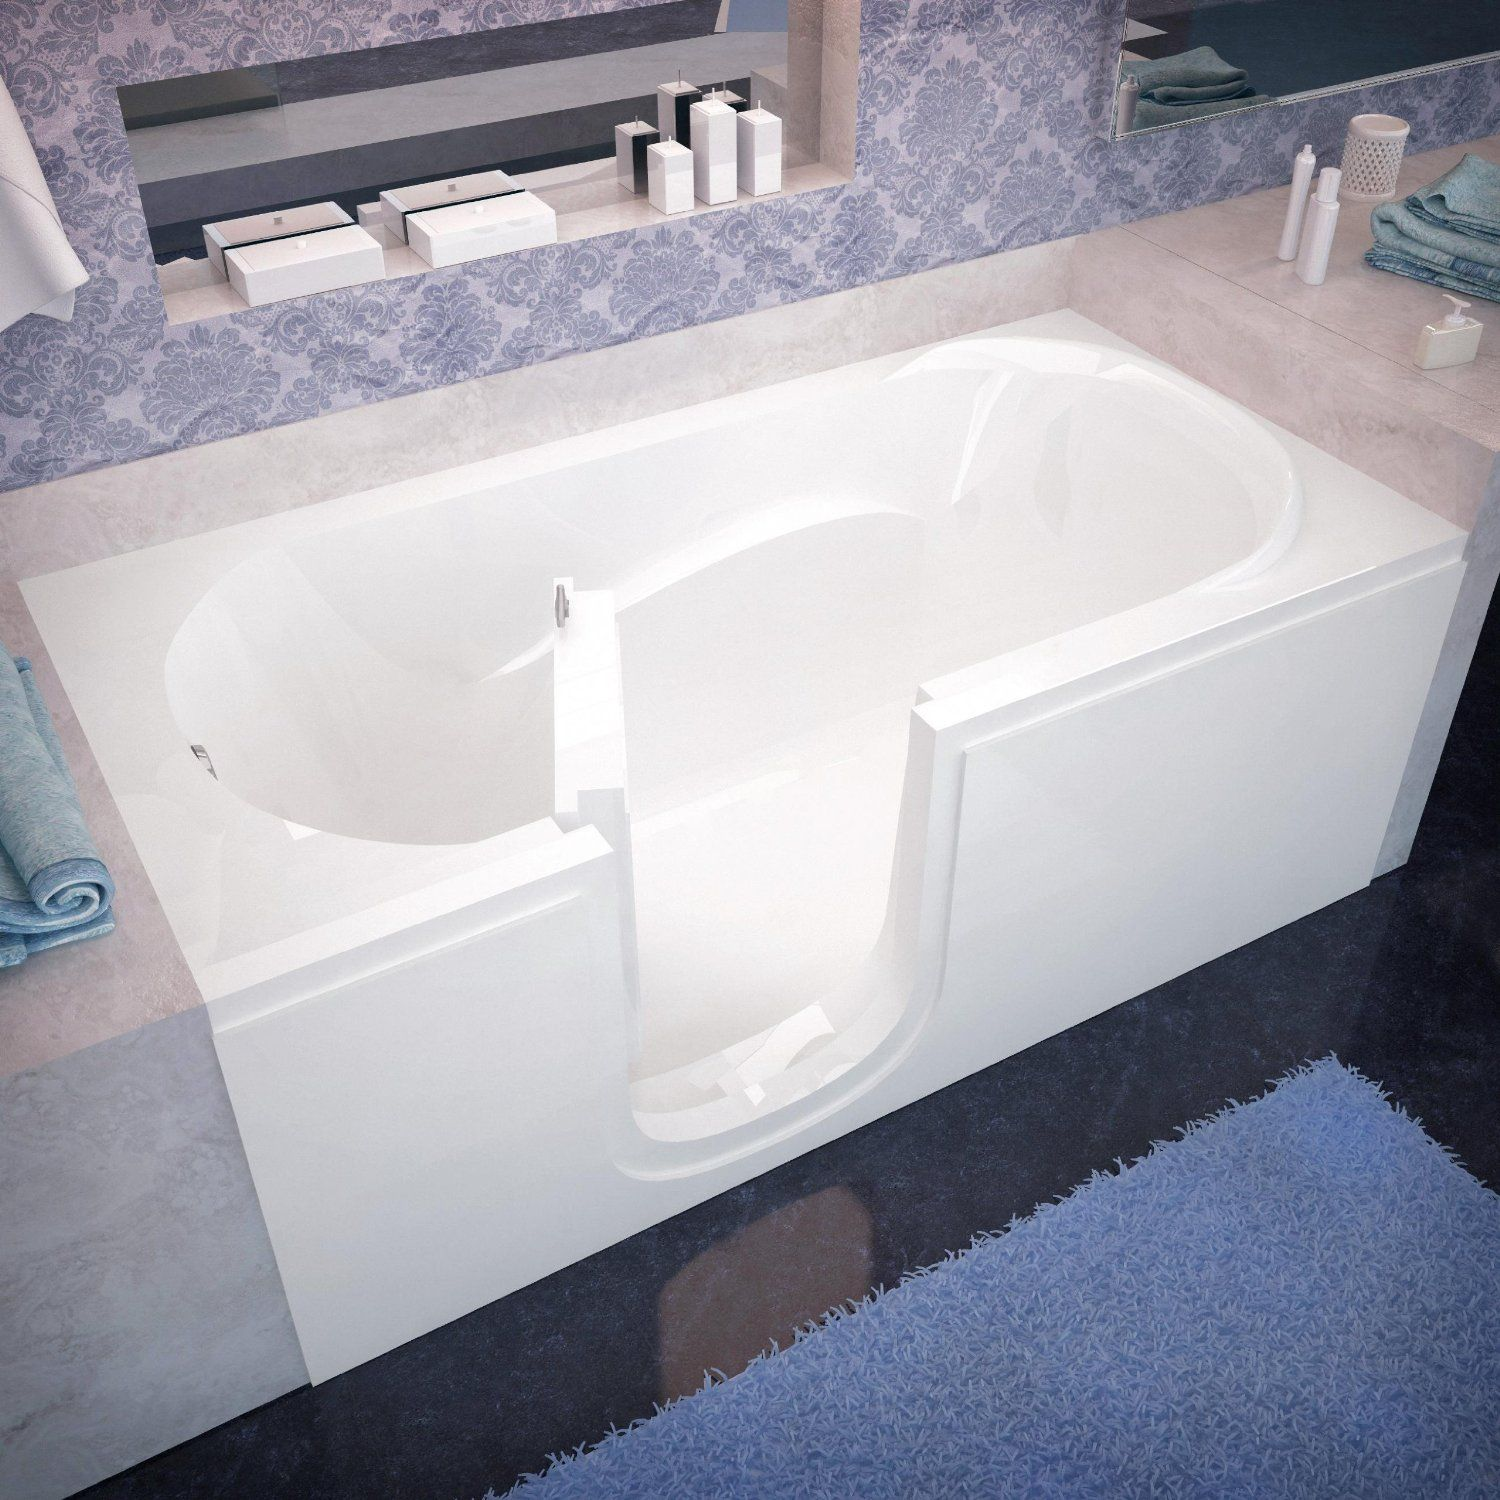 Top 10 Best Walk In Tubs In 2020 Review That Give You The Most